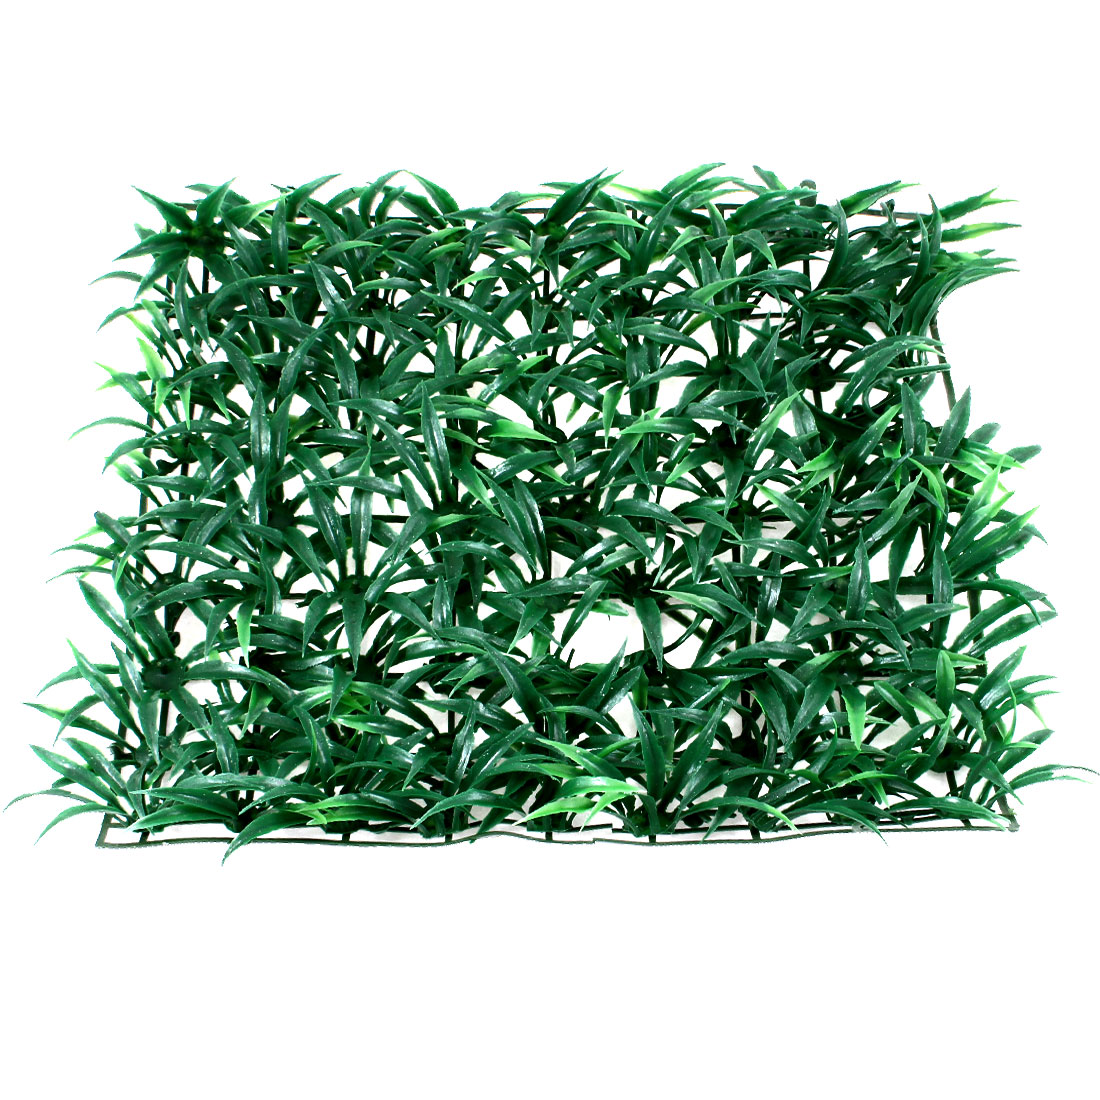 "Aquarium Green Plastic Grass Lawn Mat Turf Ornament 9.8"" x 9.8"""